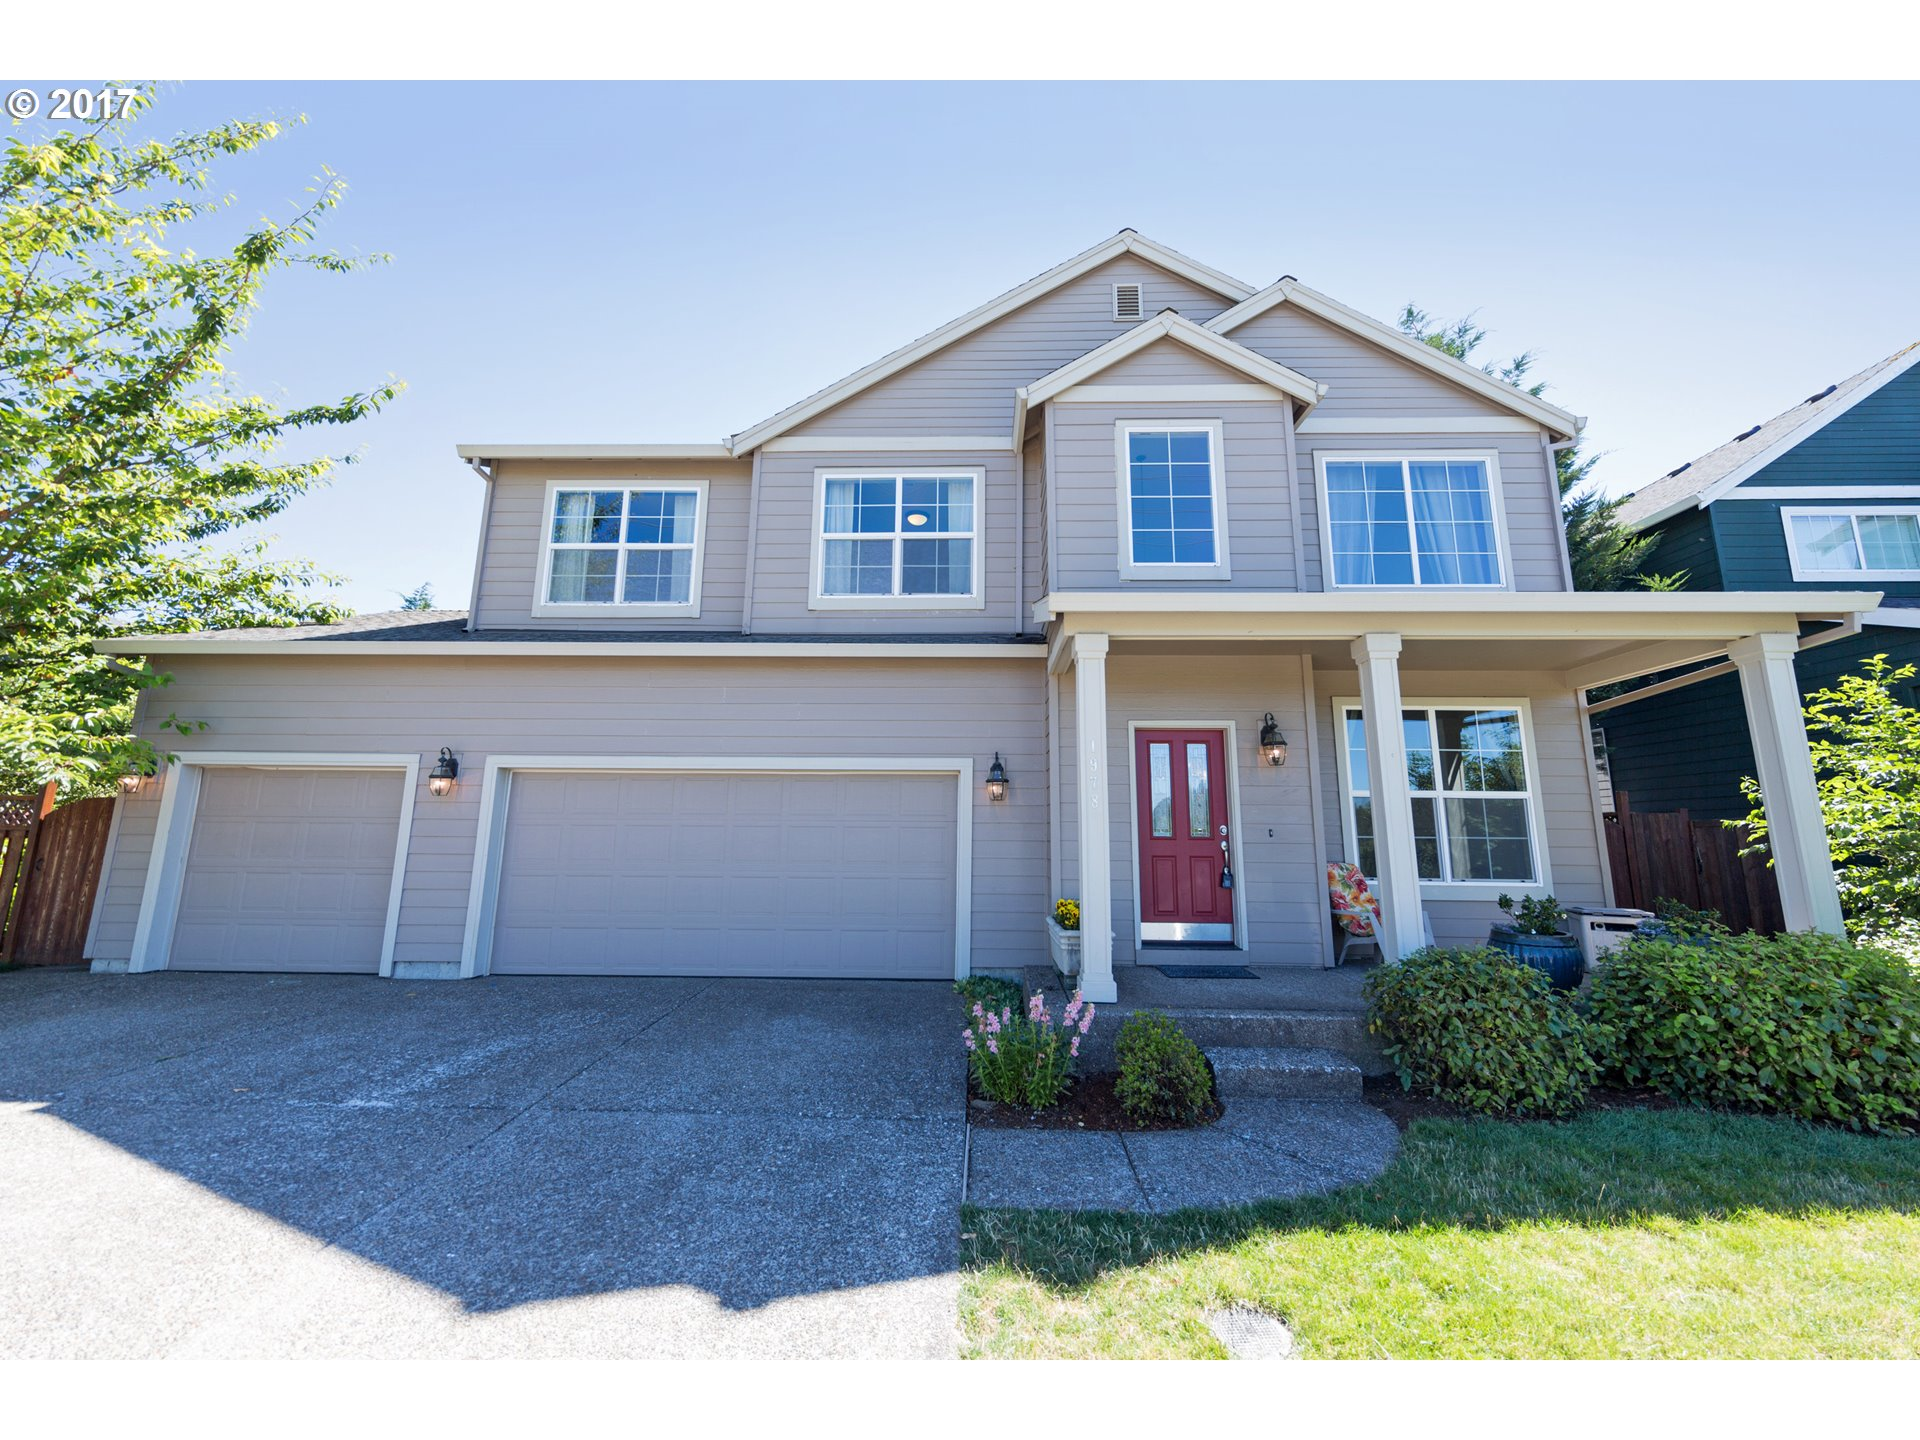 1978 N LOCUST ST, Canby, OR 97013